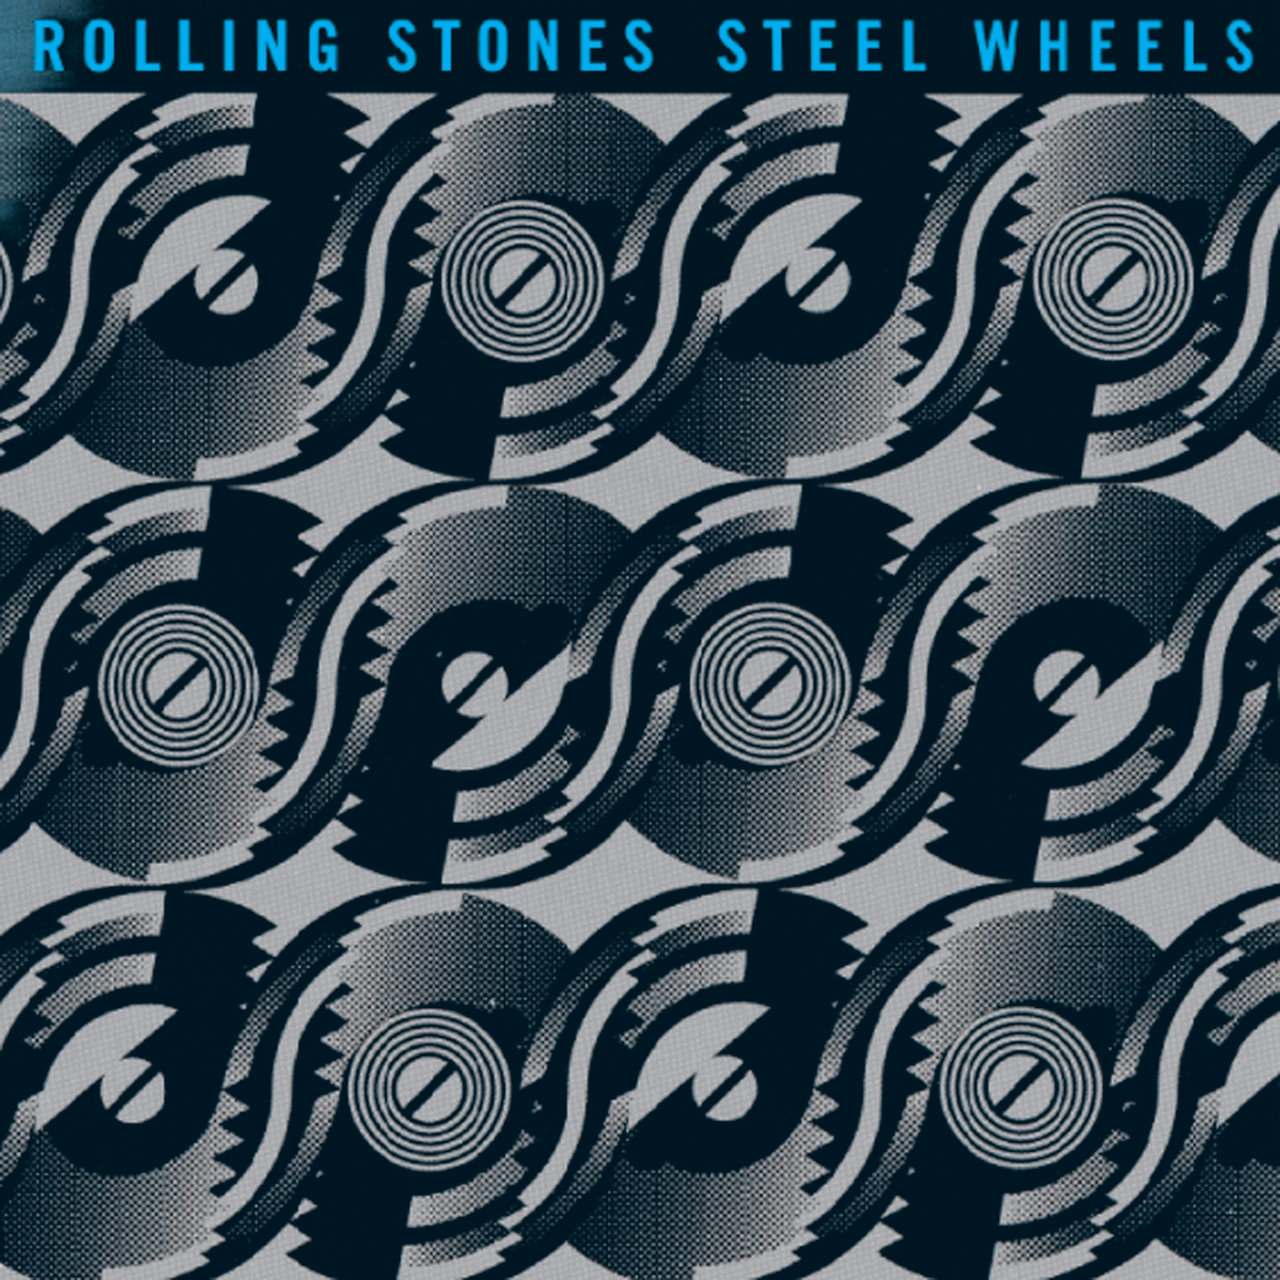 Steel Wheels ((Remastered))